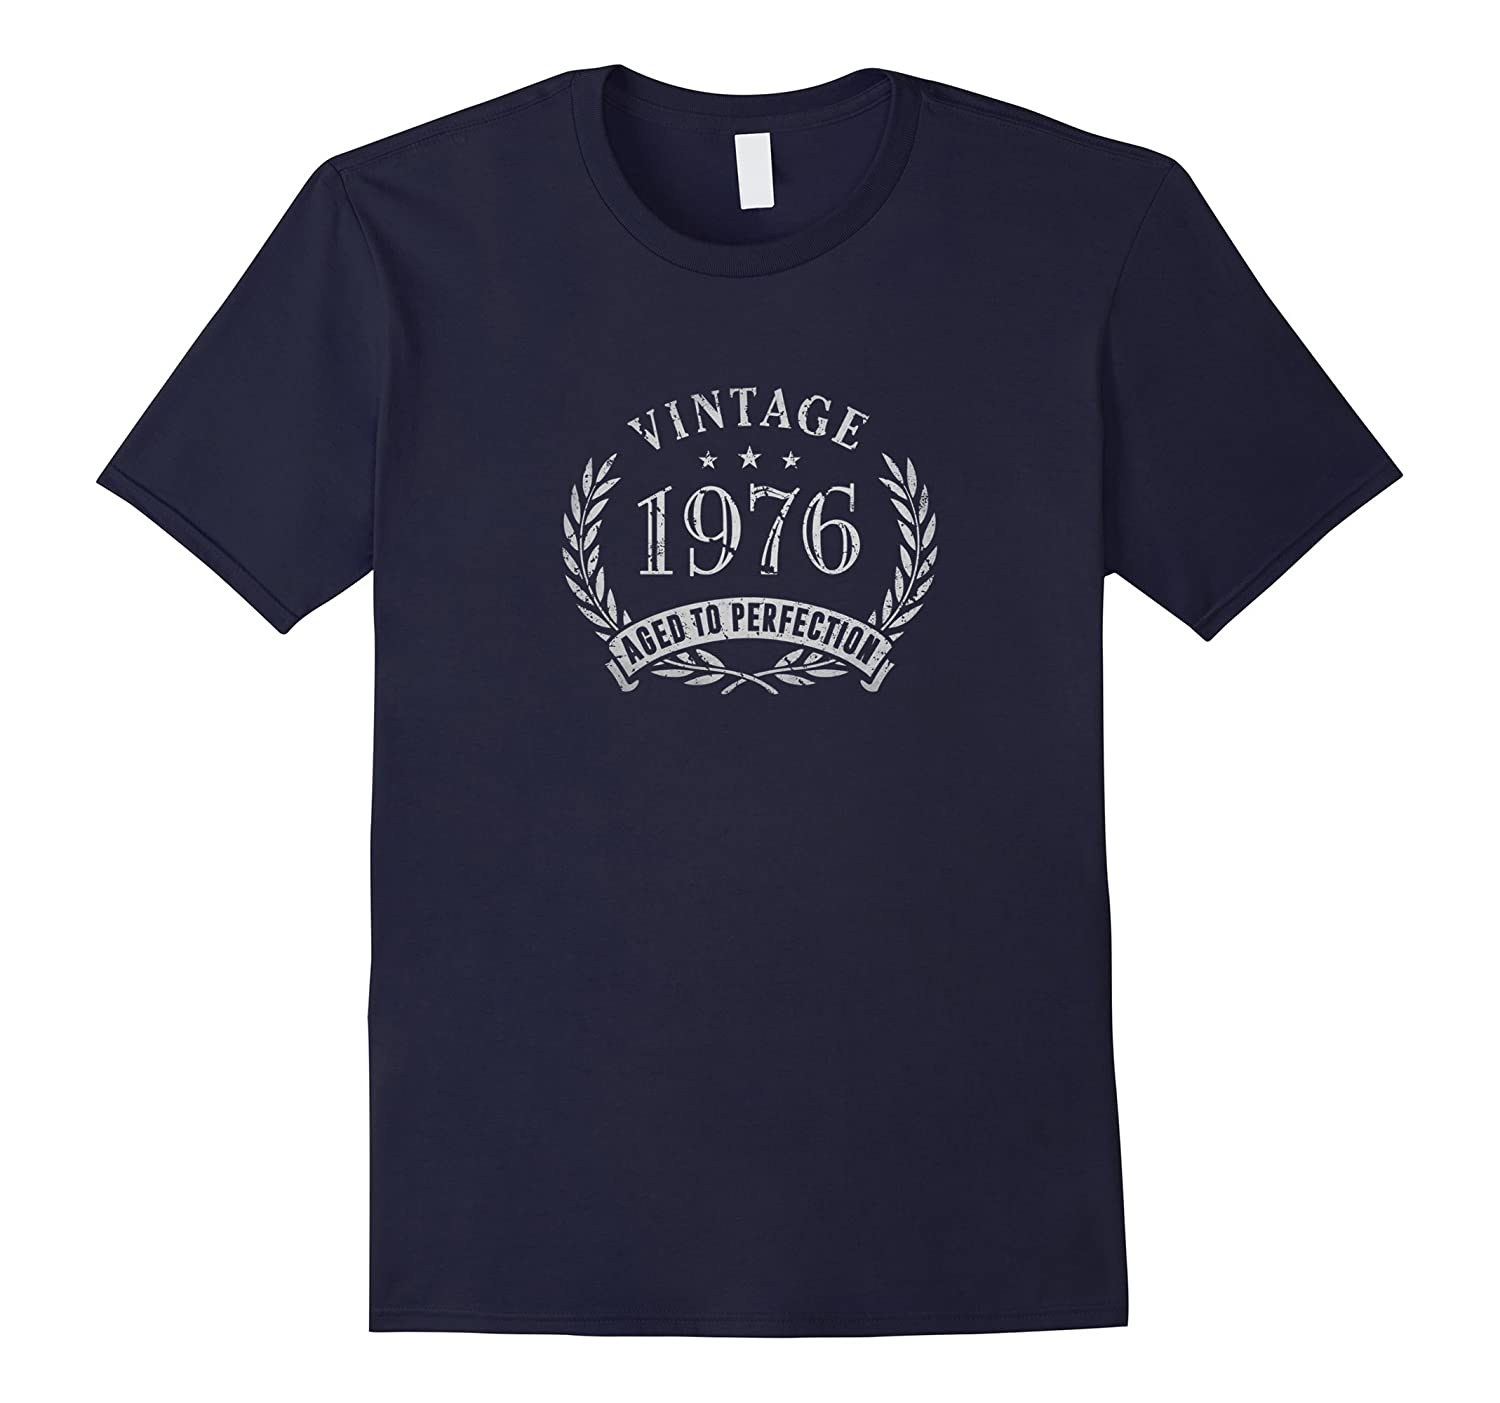 40th Birthday Gift - Vintage 1976 Aged to Perfection T-Shirt-BN